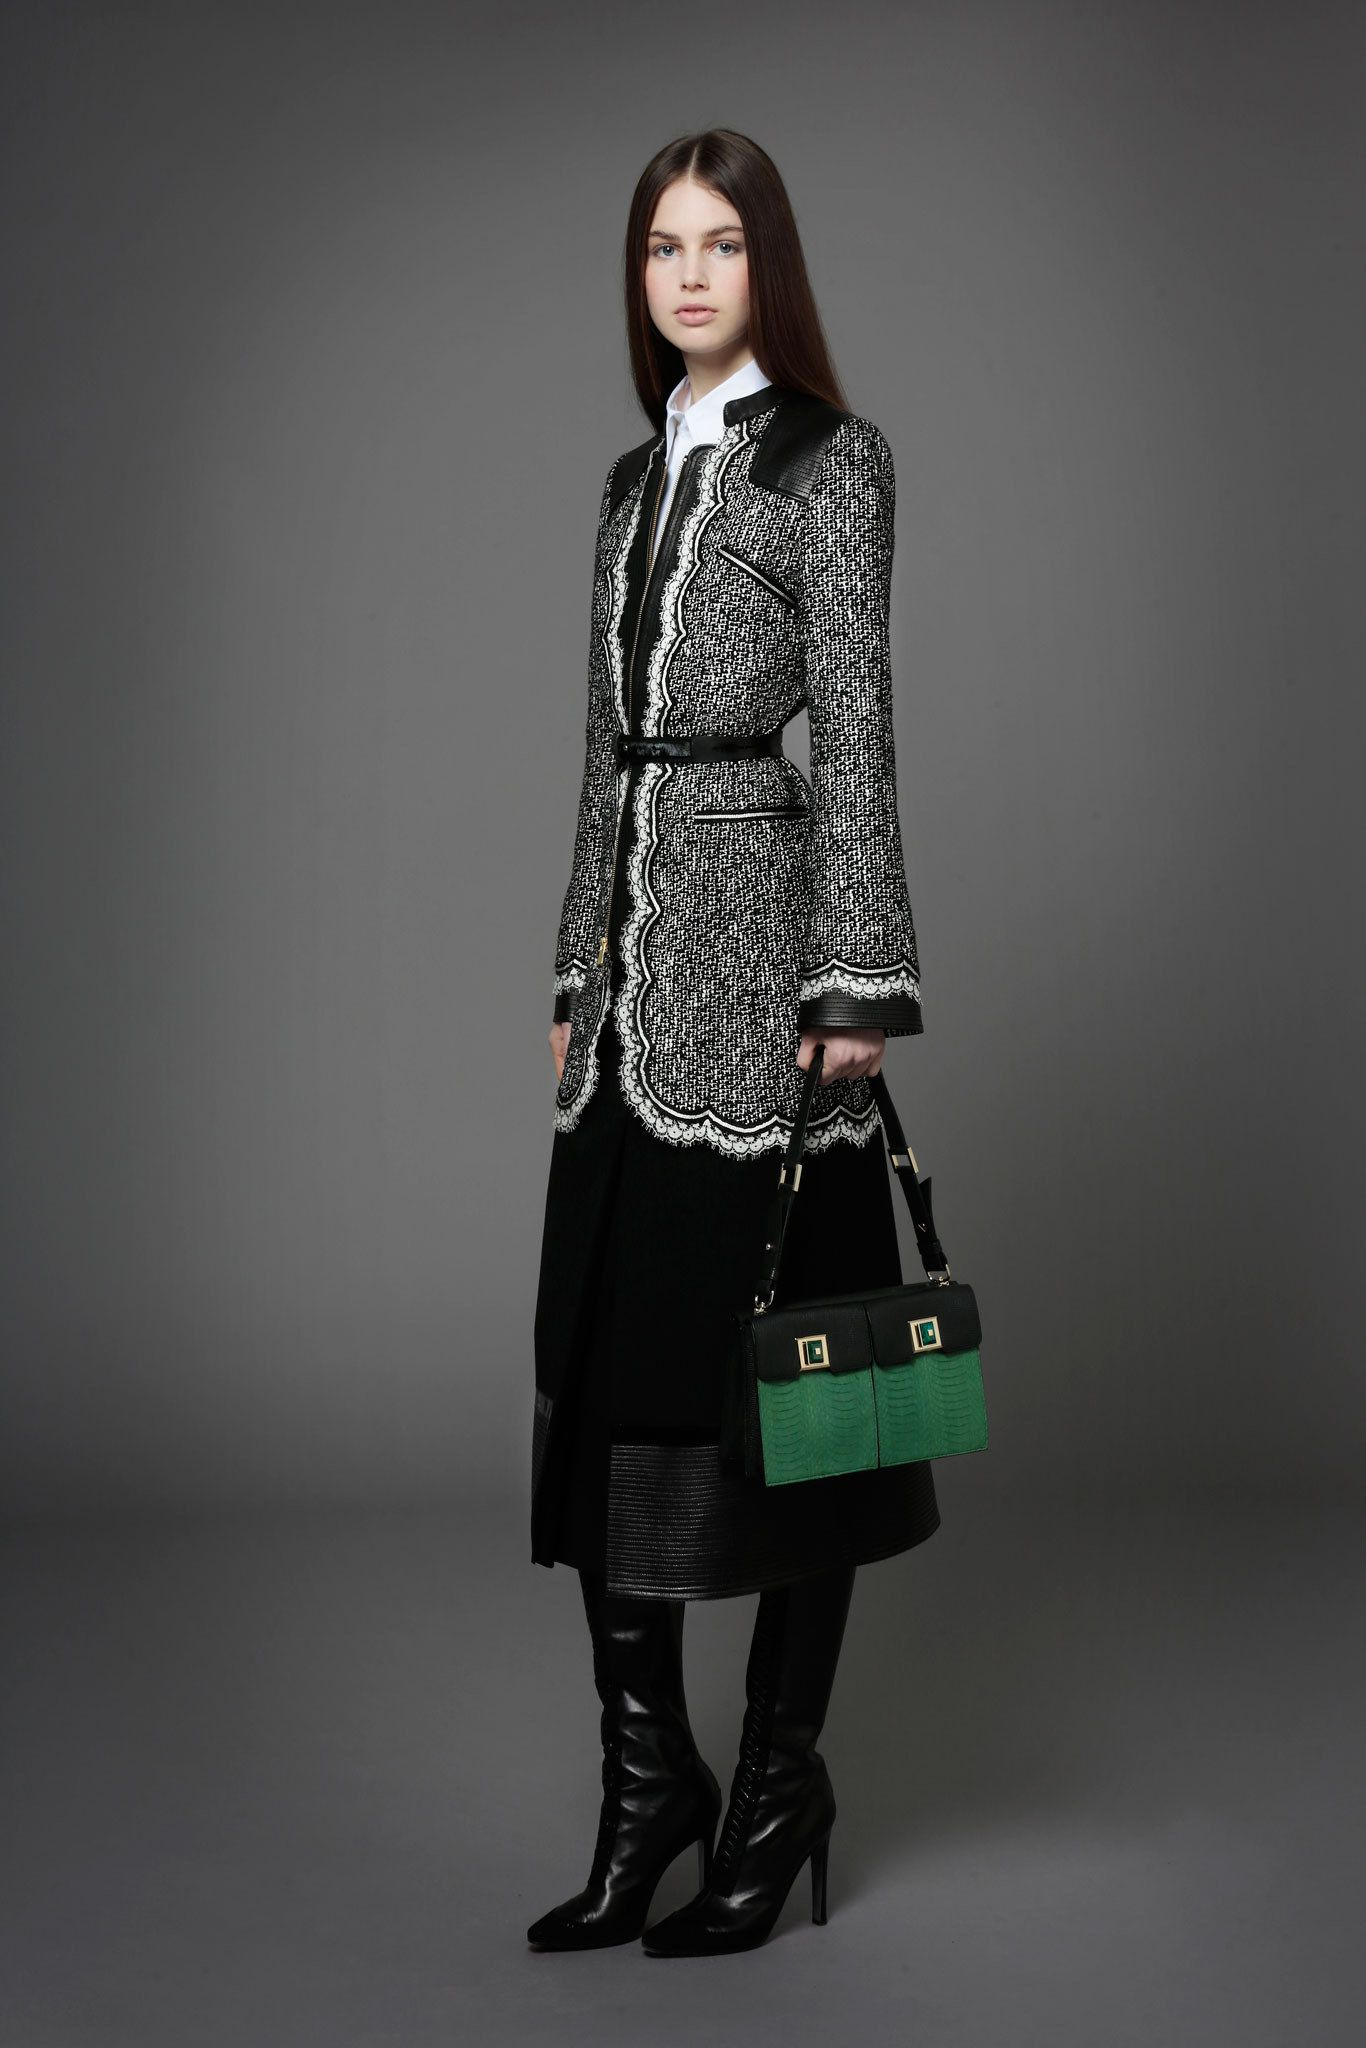 Andrew Gn Pre-Fall 2014 Fashion Show.  I like how it gives the impression of being a short coat while actually being full length.